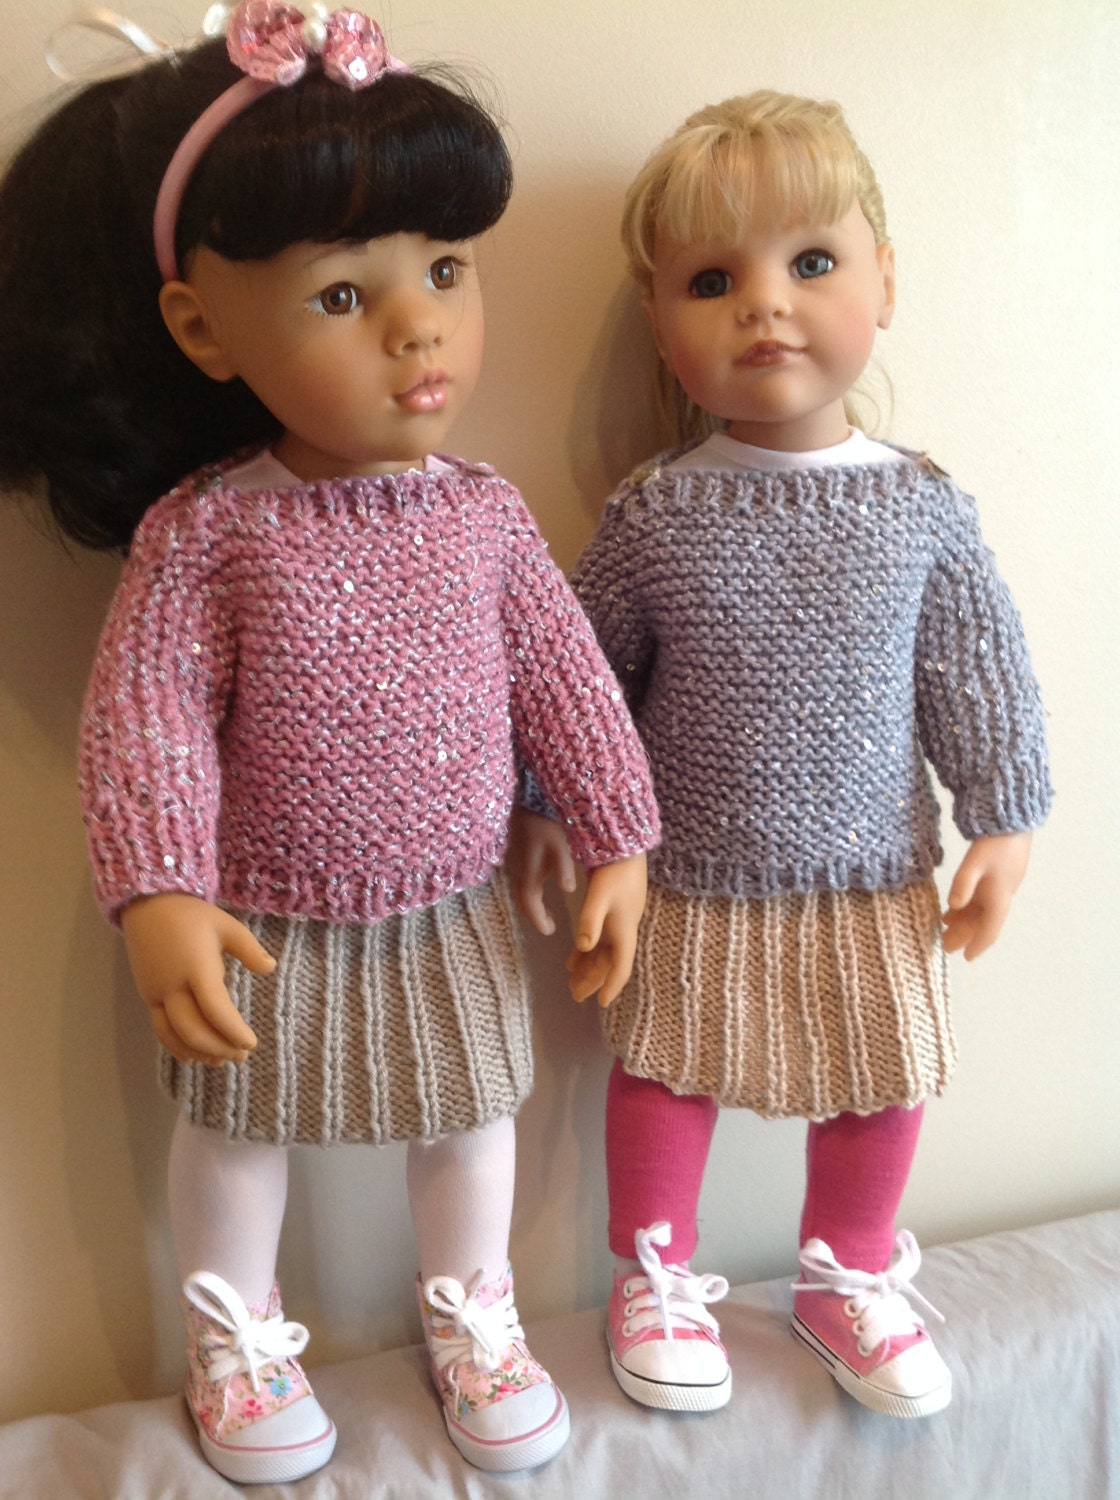 Knitting Clothes For Dolls : Dolls fashion clothes knitting pattern to fit doll